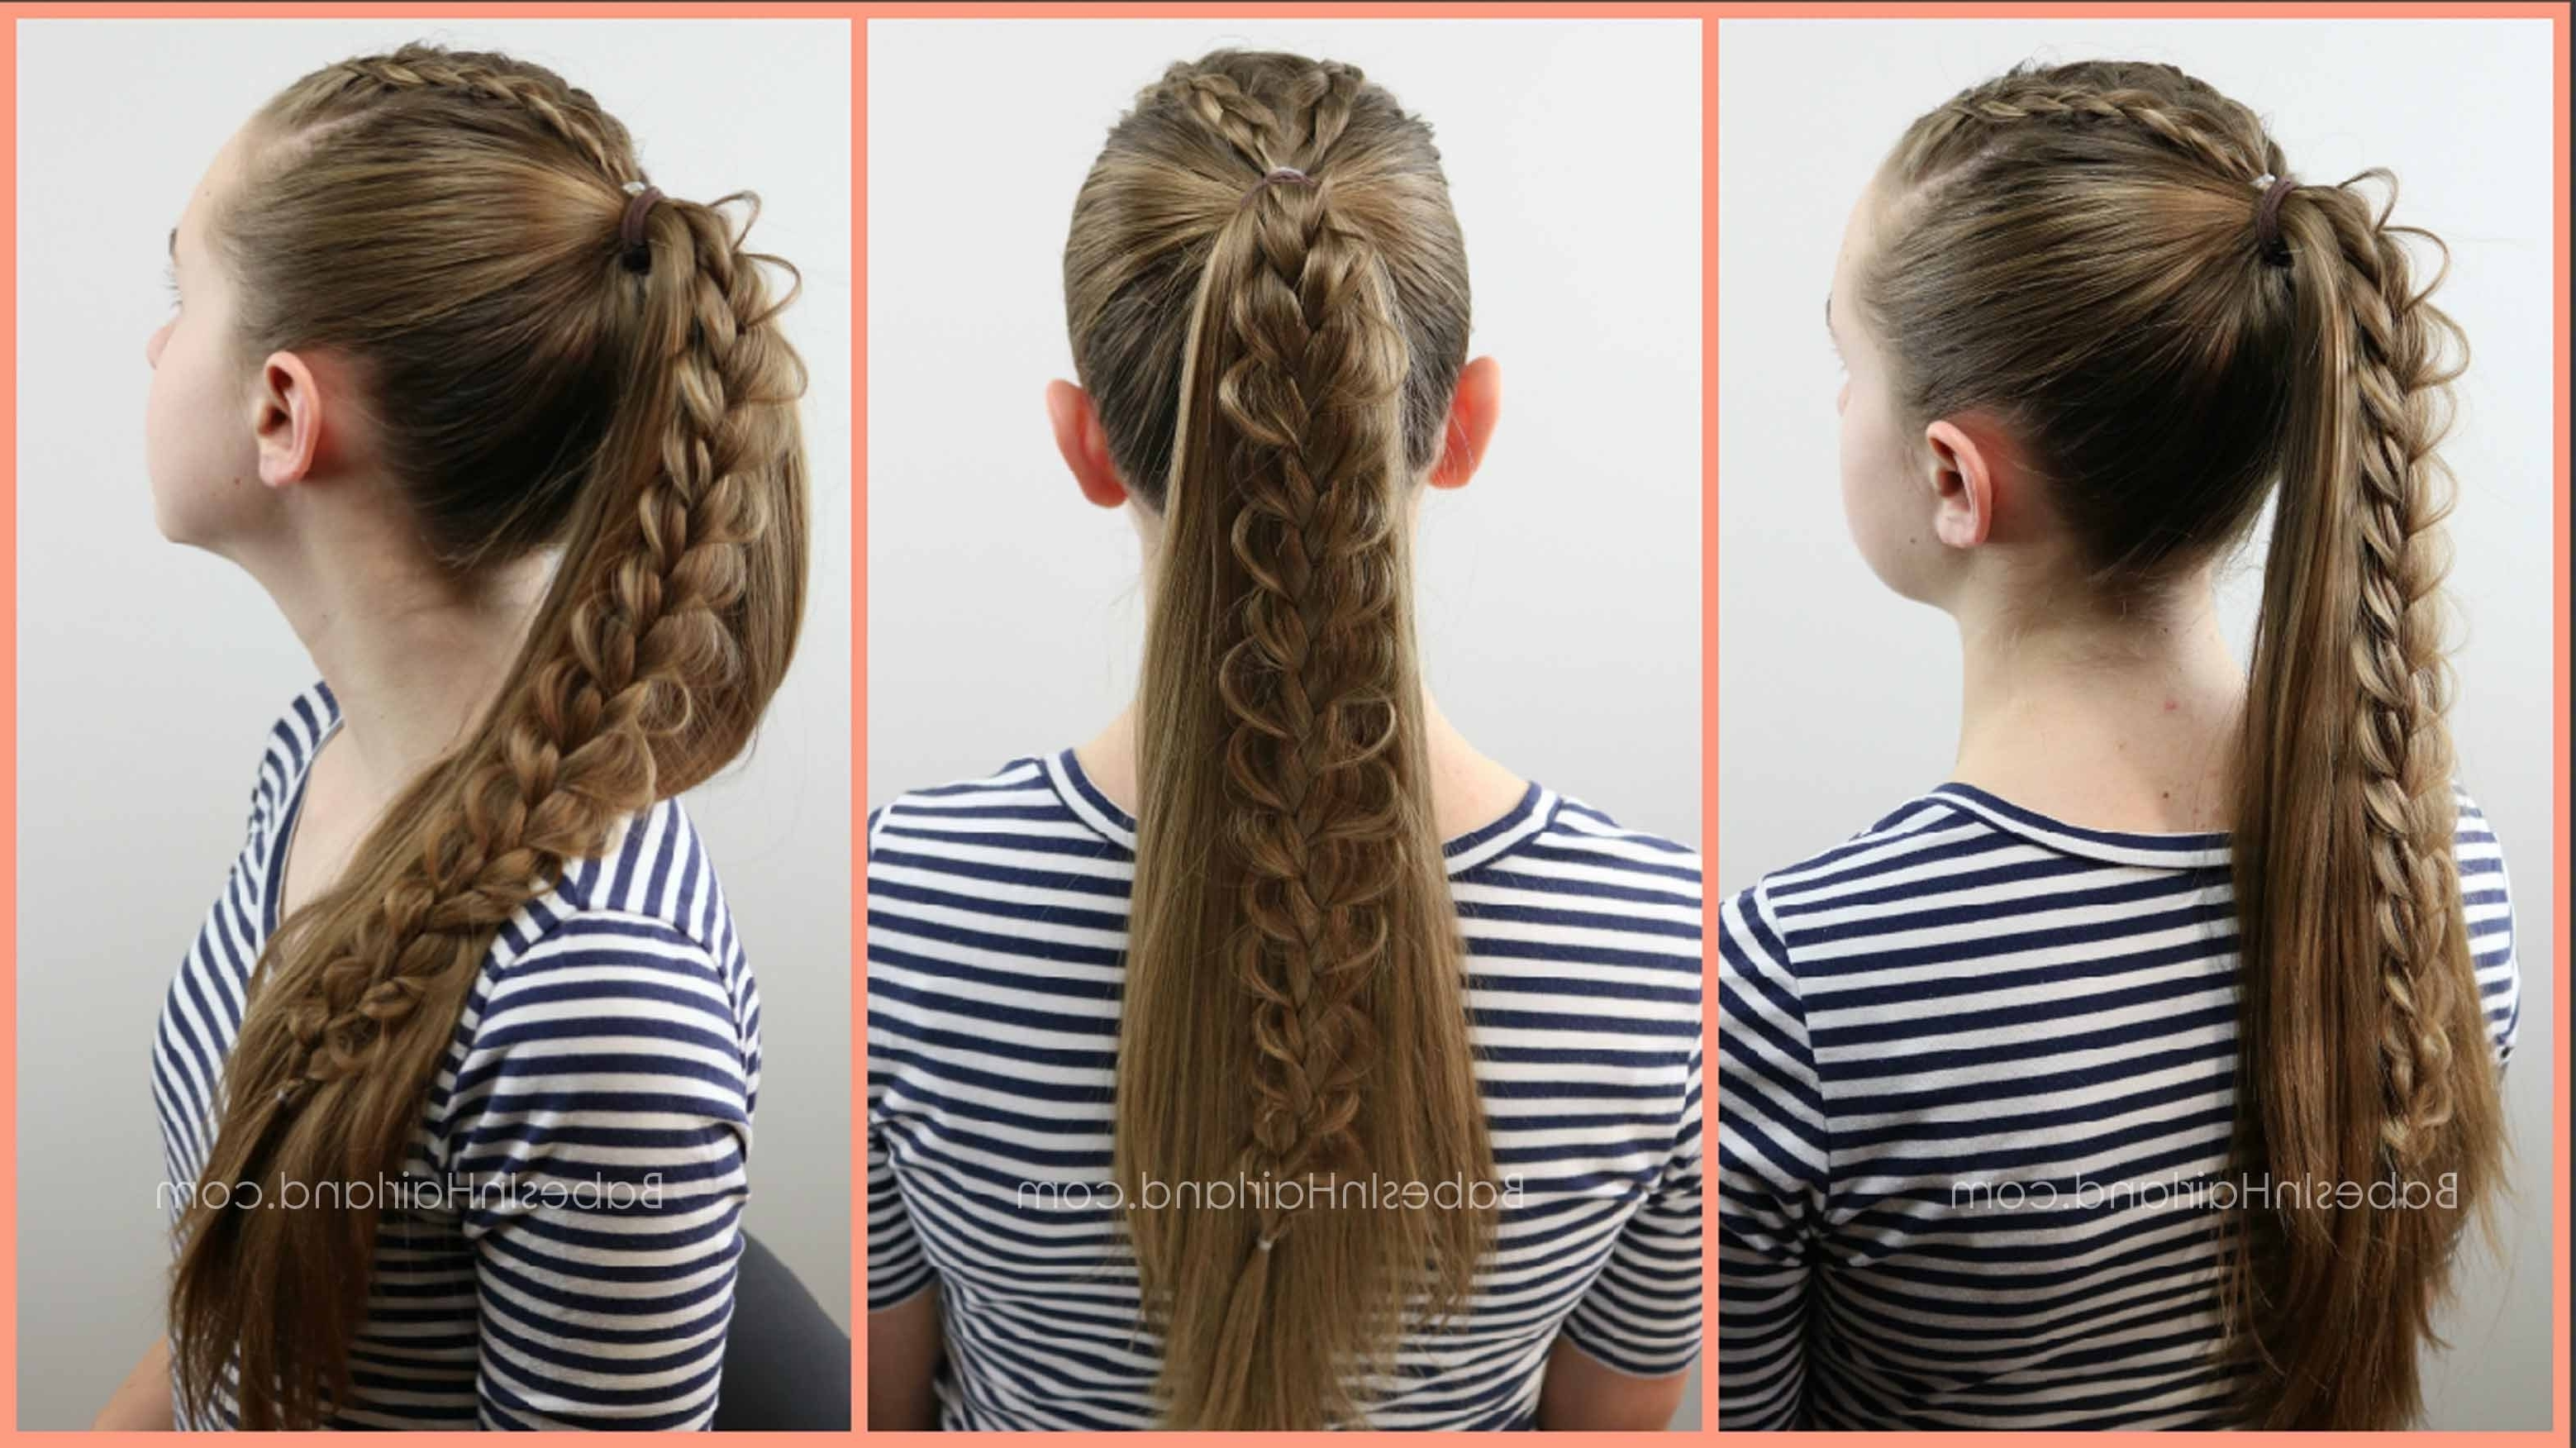 2 Dutch Braids 5 Different Hairstyles (View 5 of 20)